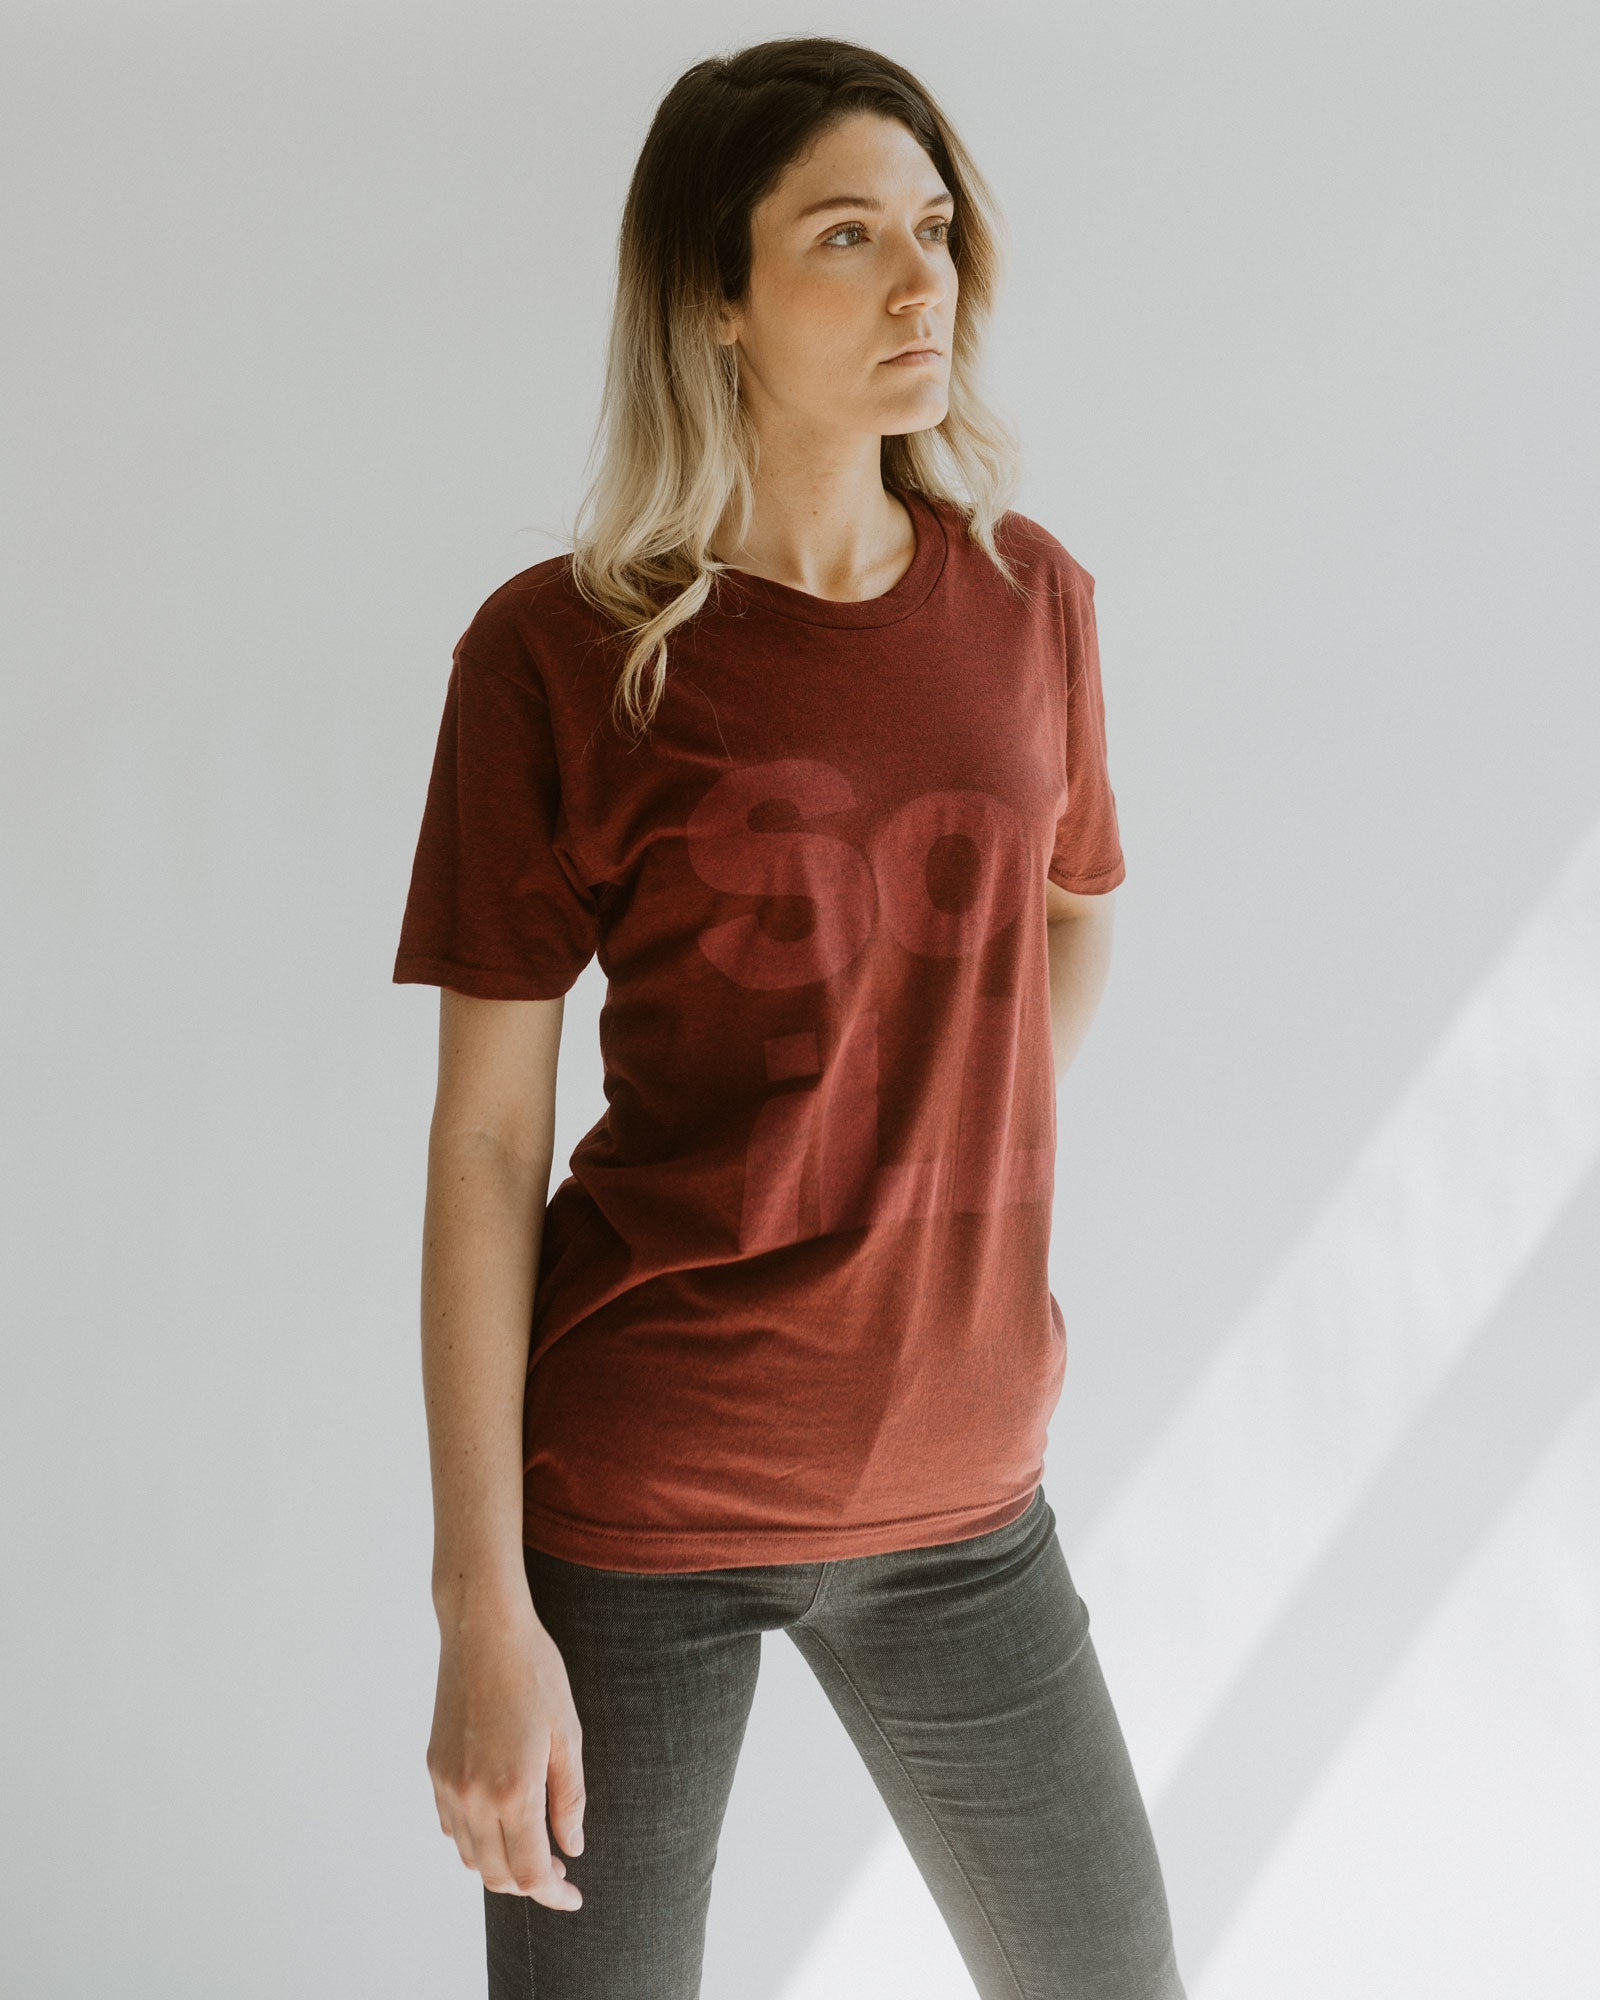 maroon heather so ill stacked logo tee on a woman